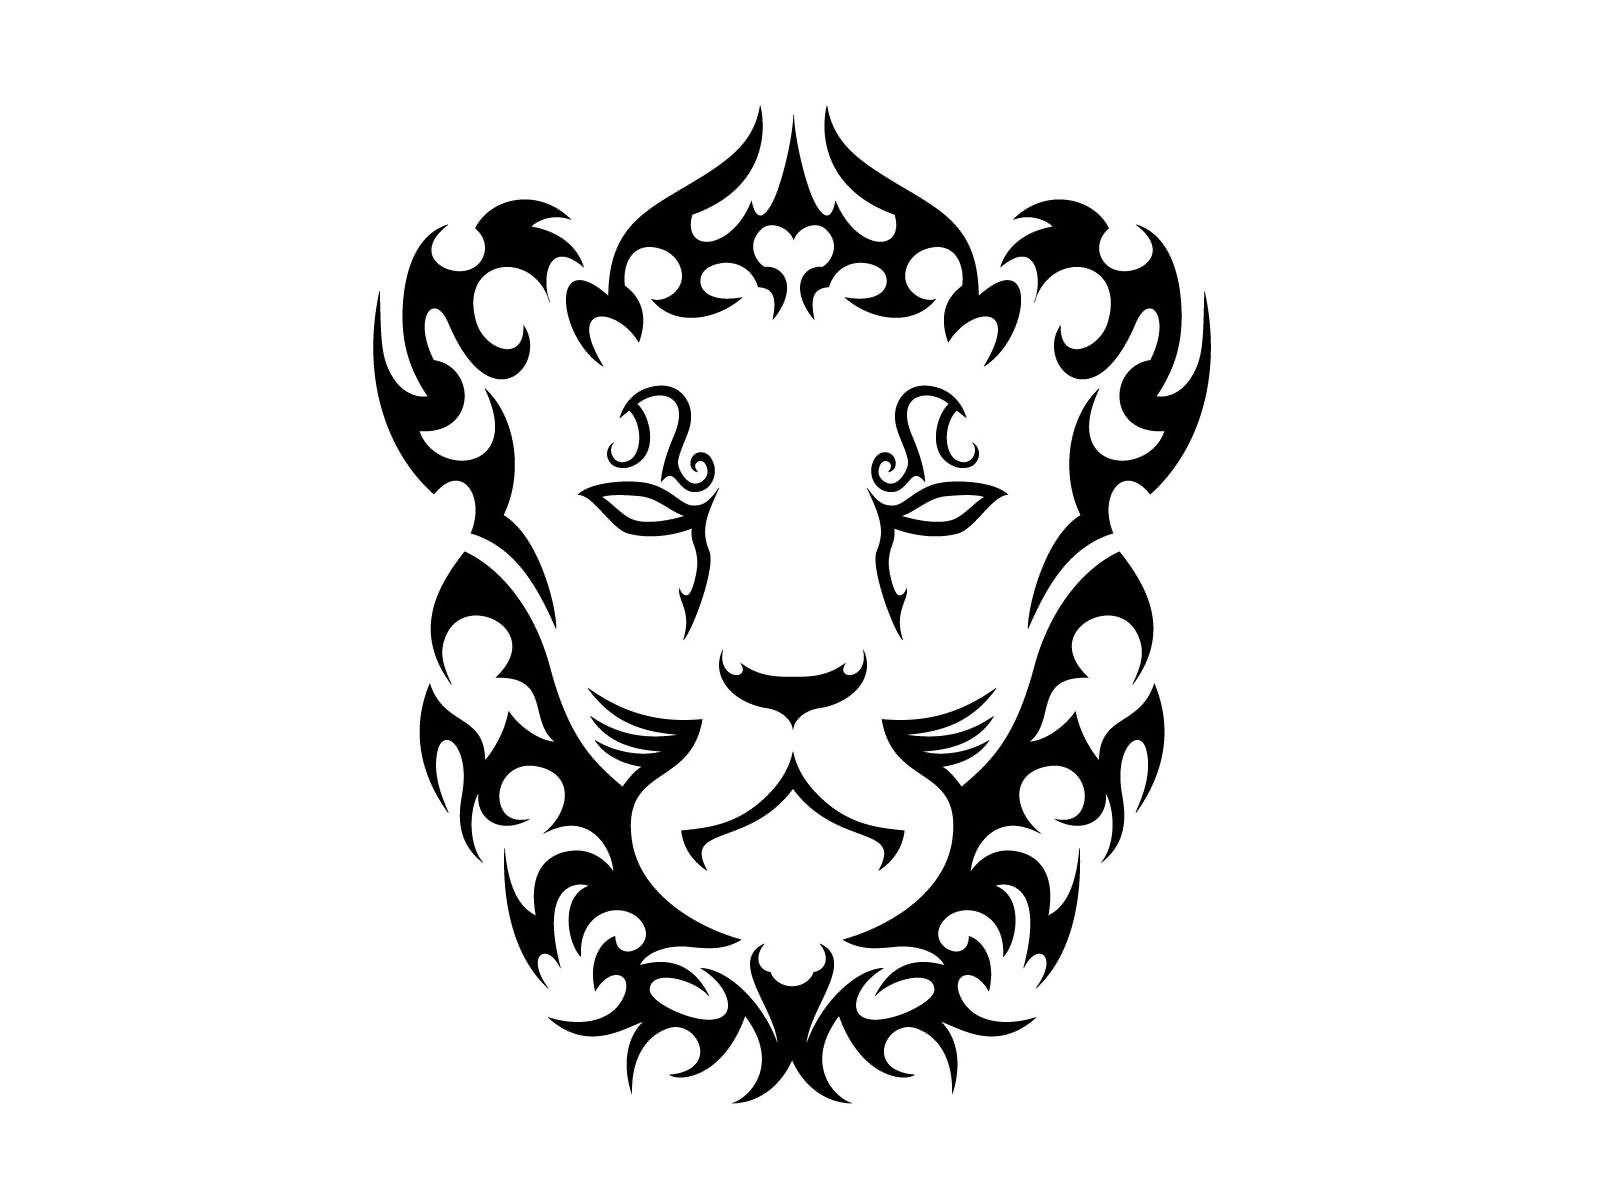 Sign tattoo designs - Nice Tribal Lioness Leo Sign Tattoo Design For